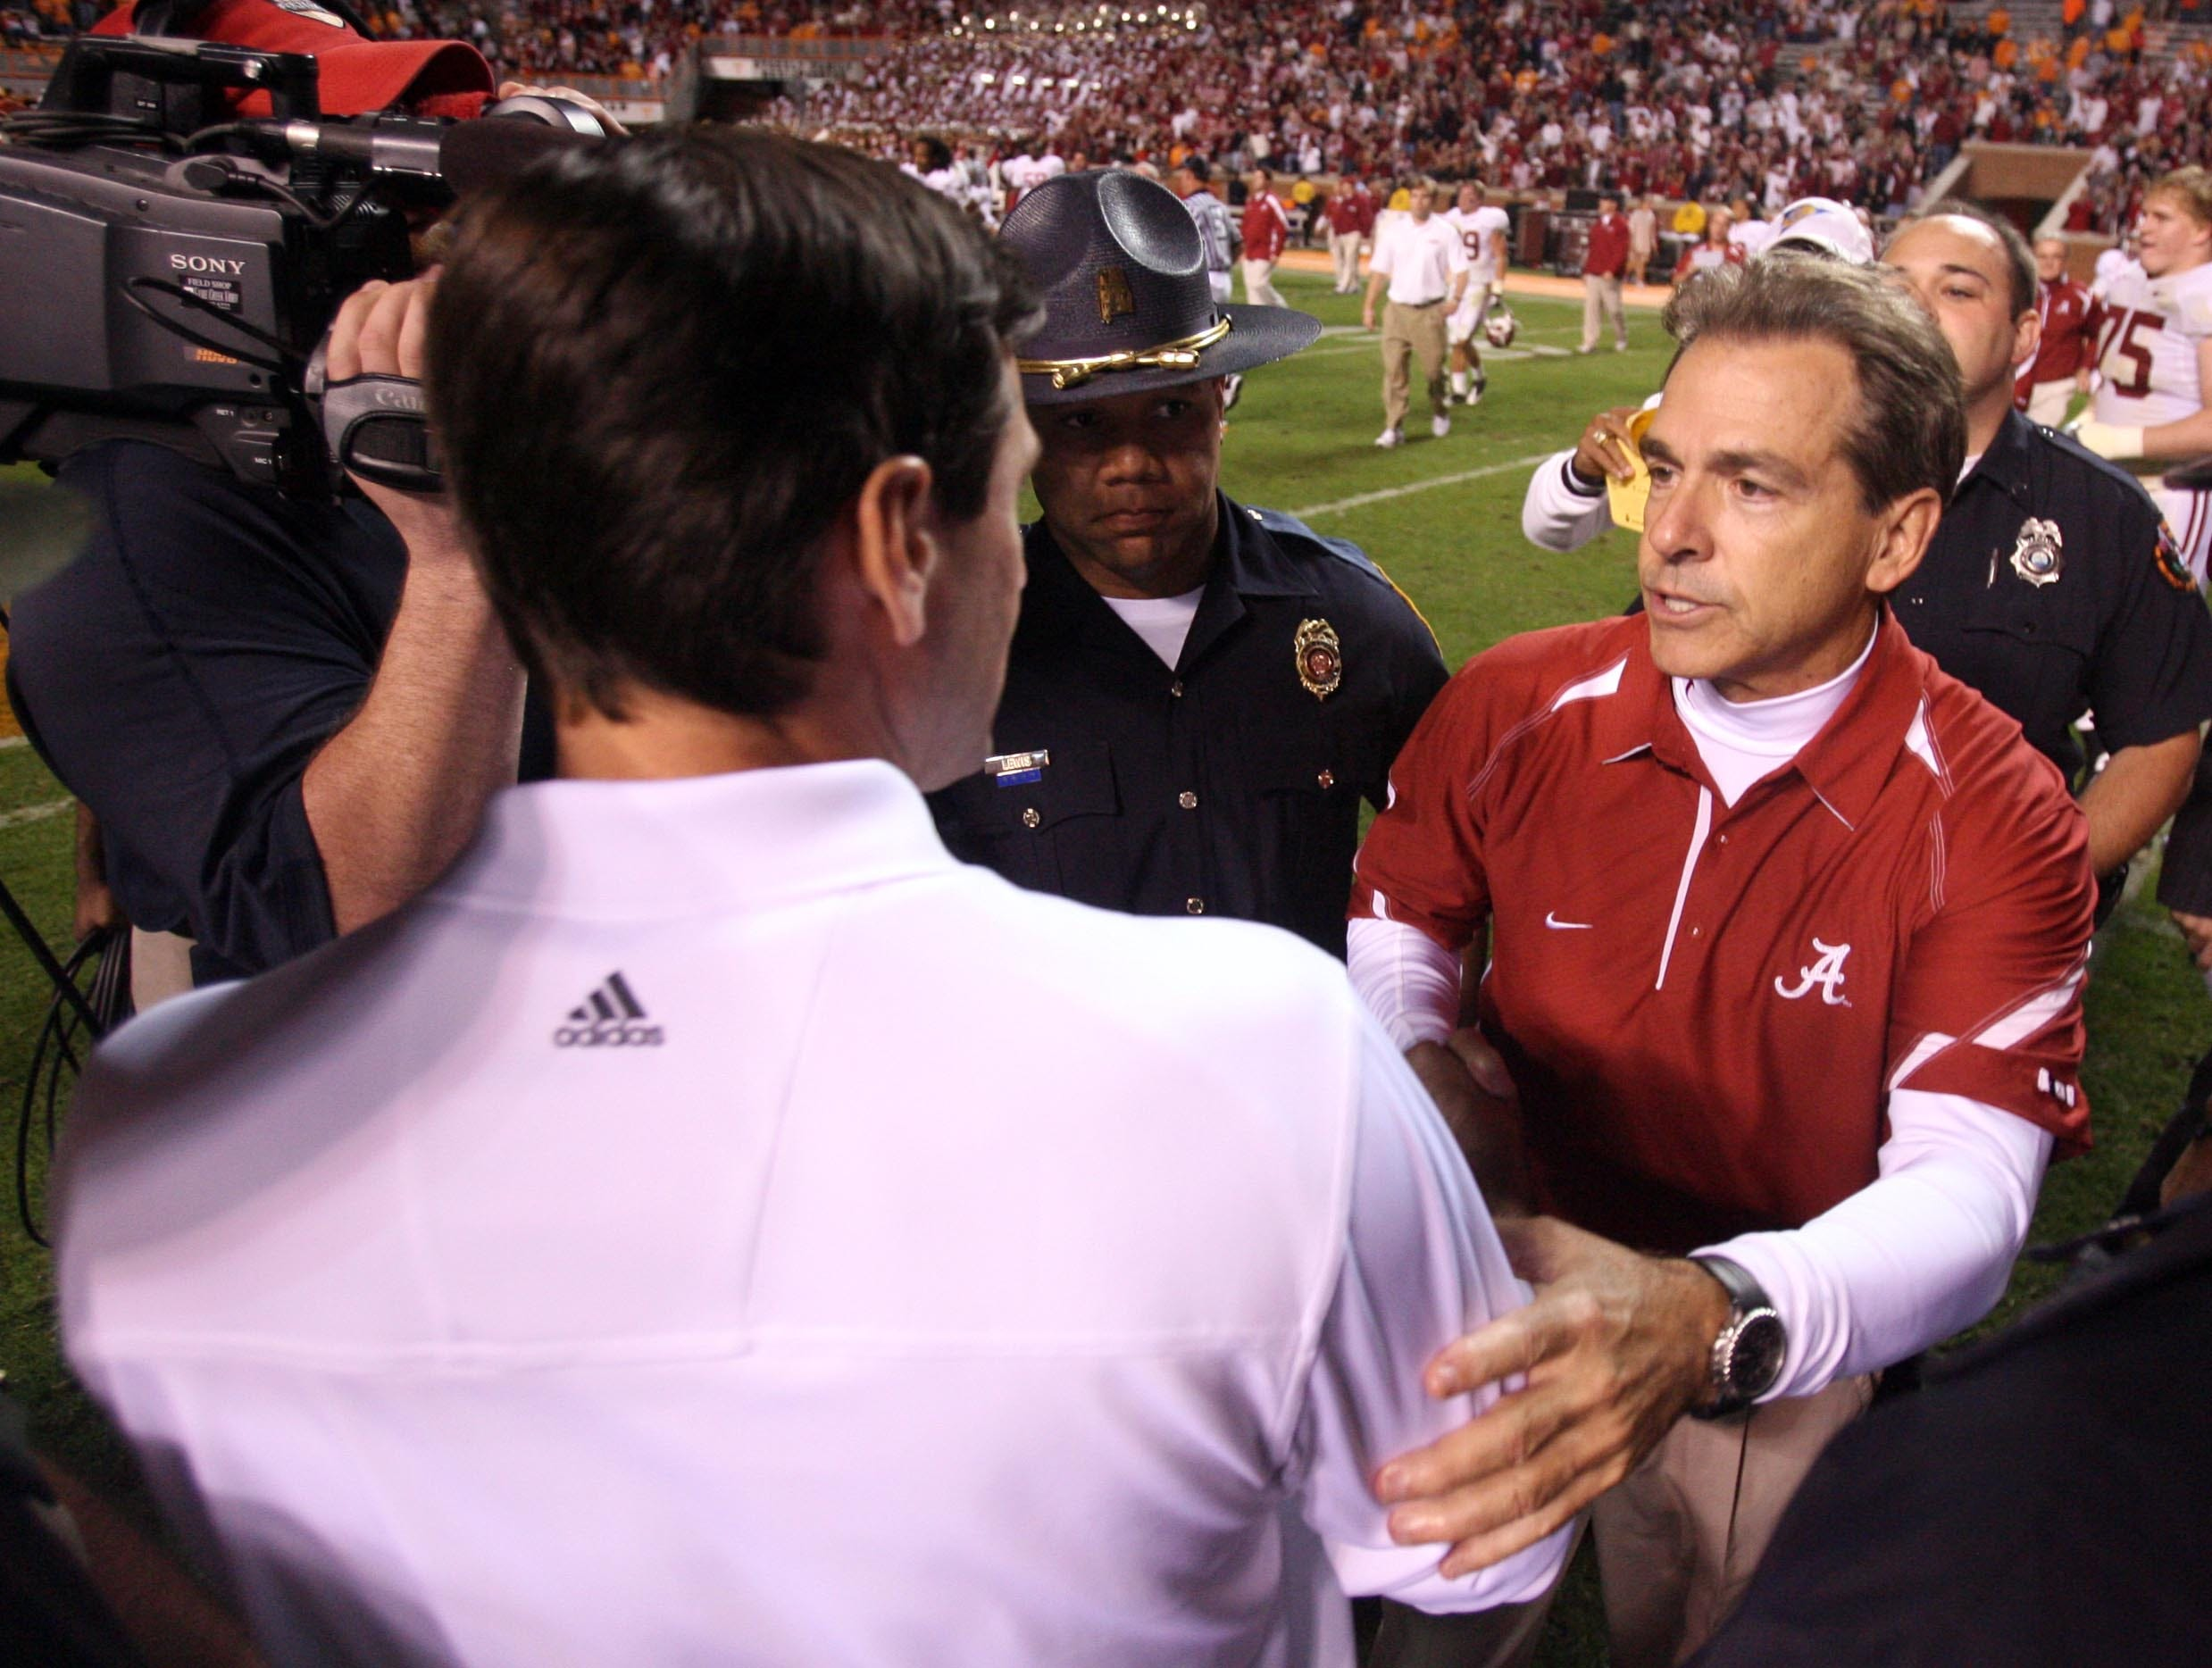 Tennessee head coach Derek Dooley, left, shakes hands with Alabama head coach Nick Saban after the Vols' 41-10 loss to the Crimson Tide at Neyland Stadium Saturday, Oct. 23, 2010.